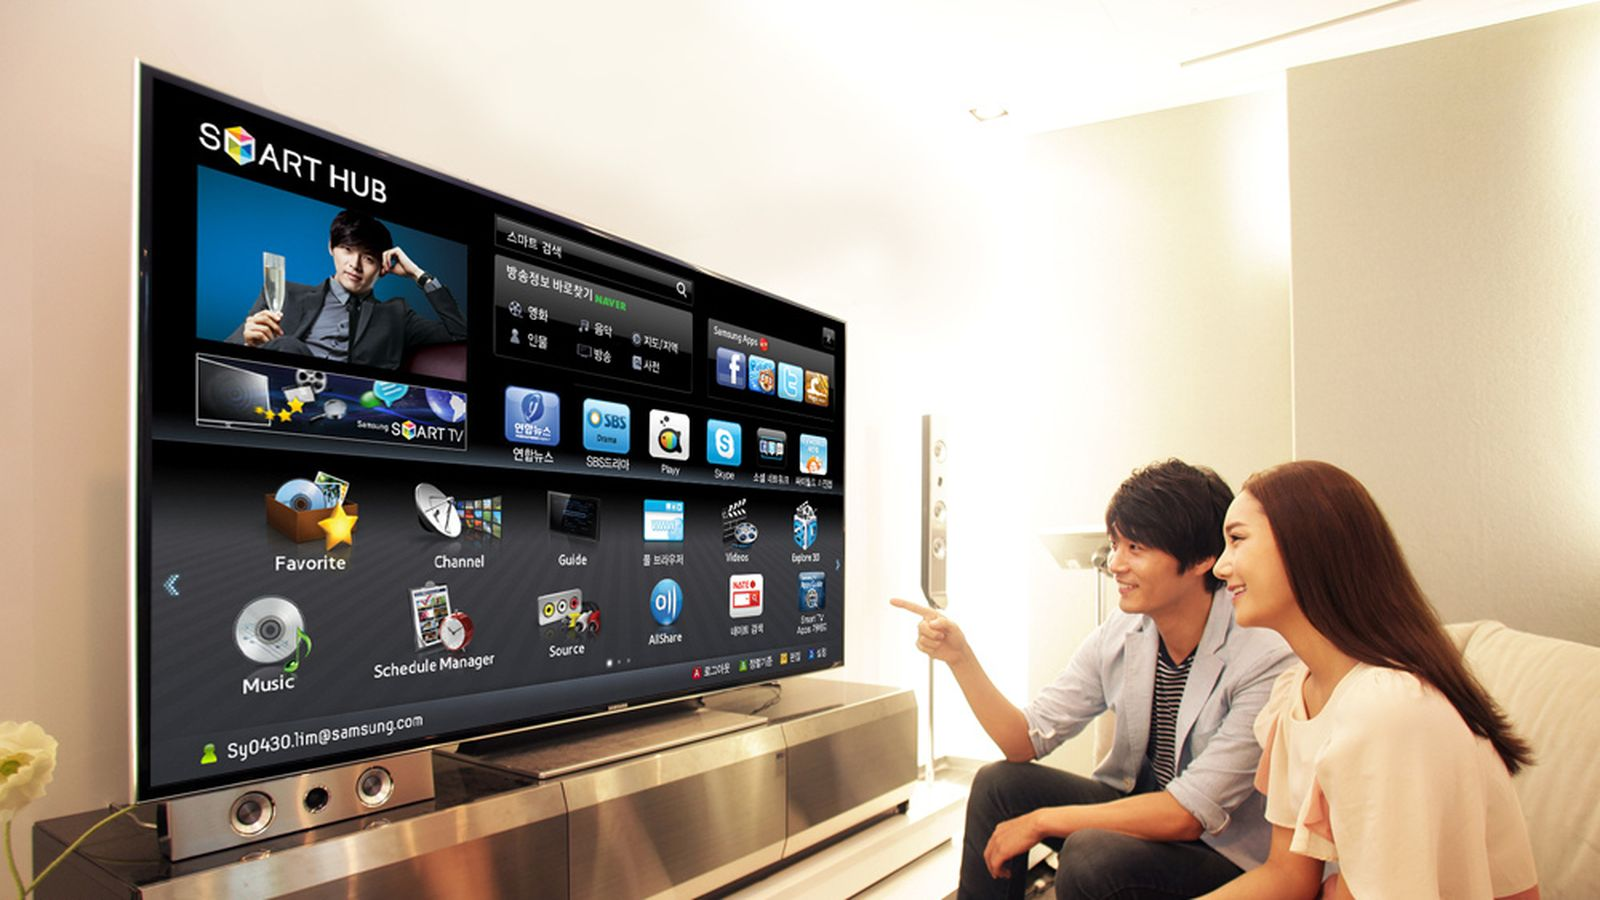 Samsung Smart TVs To Come Pre-Loaded with 'McAfee Security